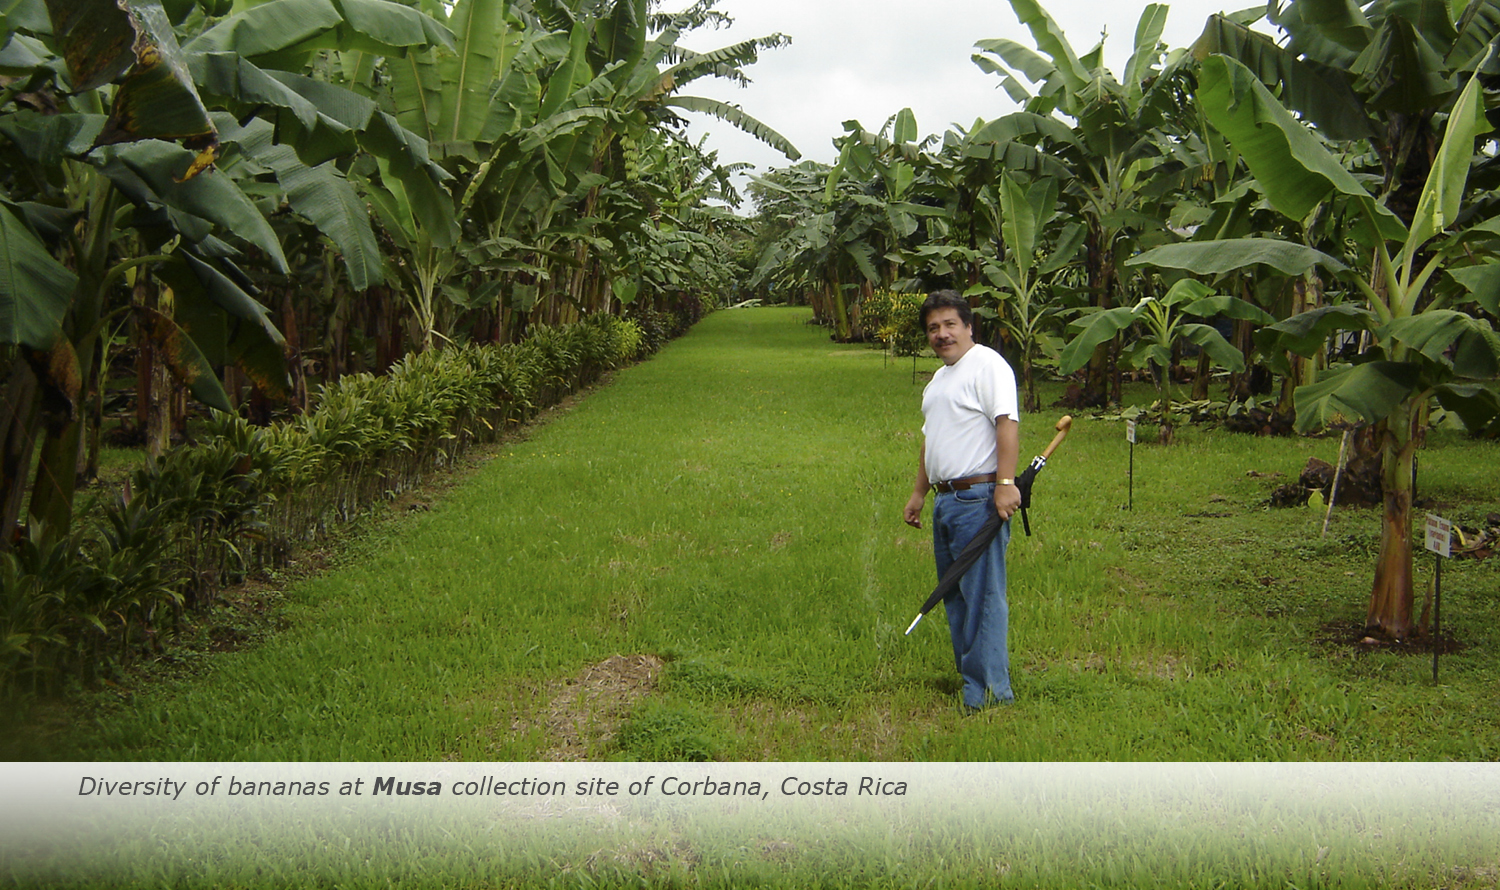 Info & Facts: Diversity of bananas at Musa collection site of Corbana, Costa Rica